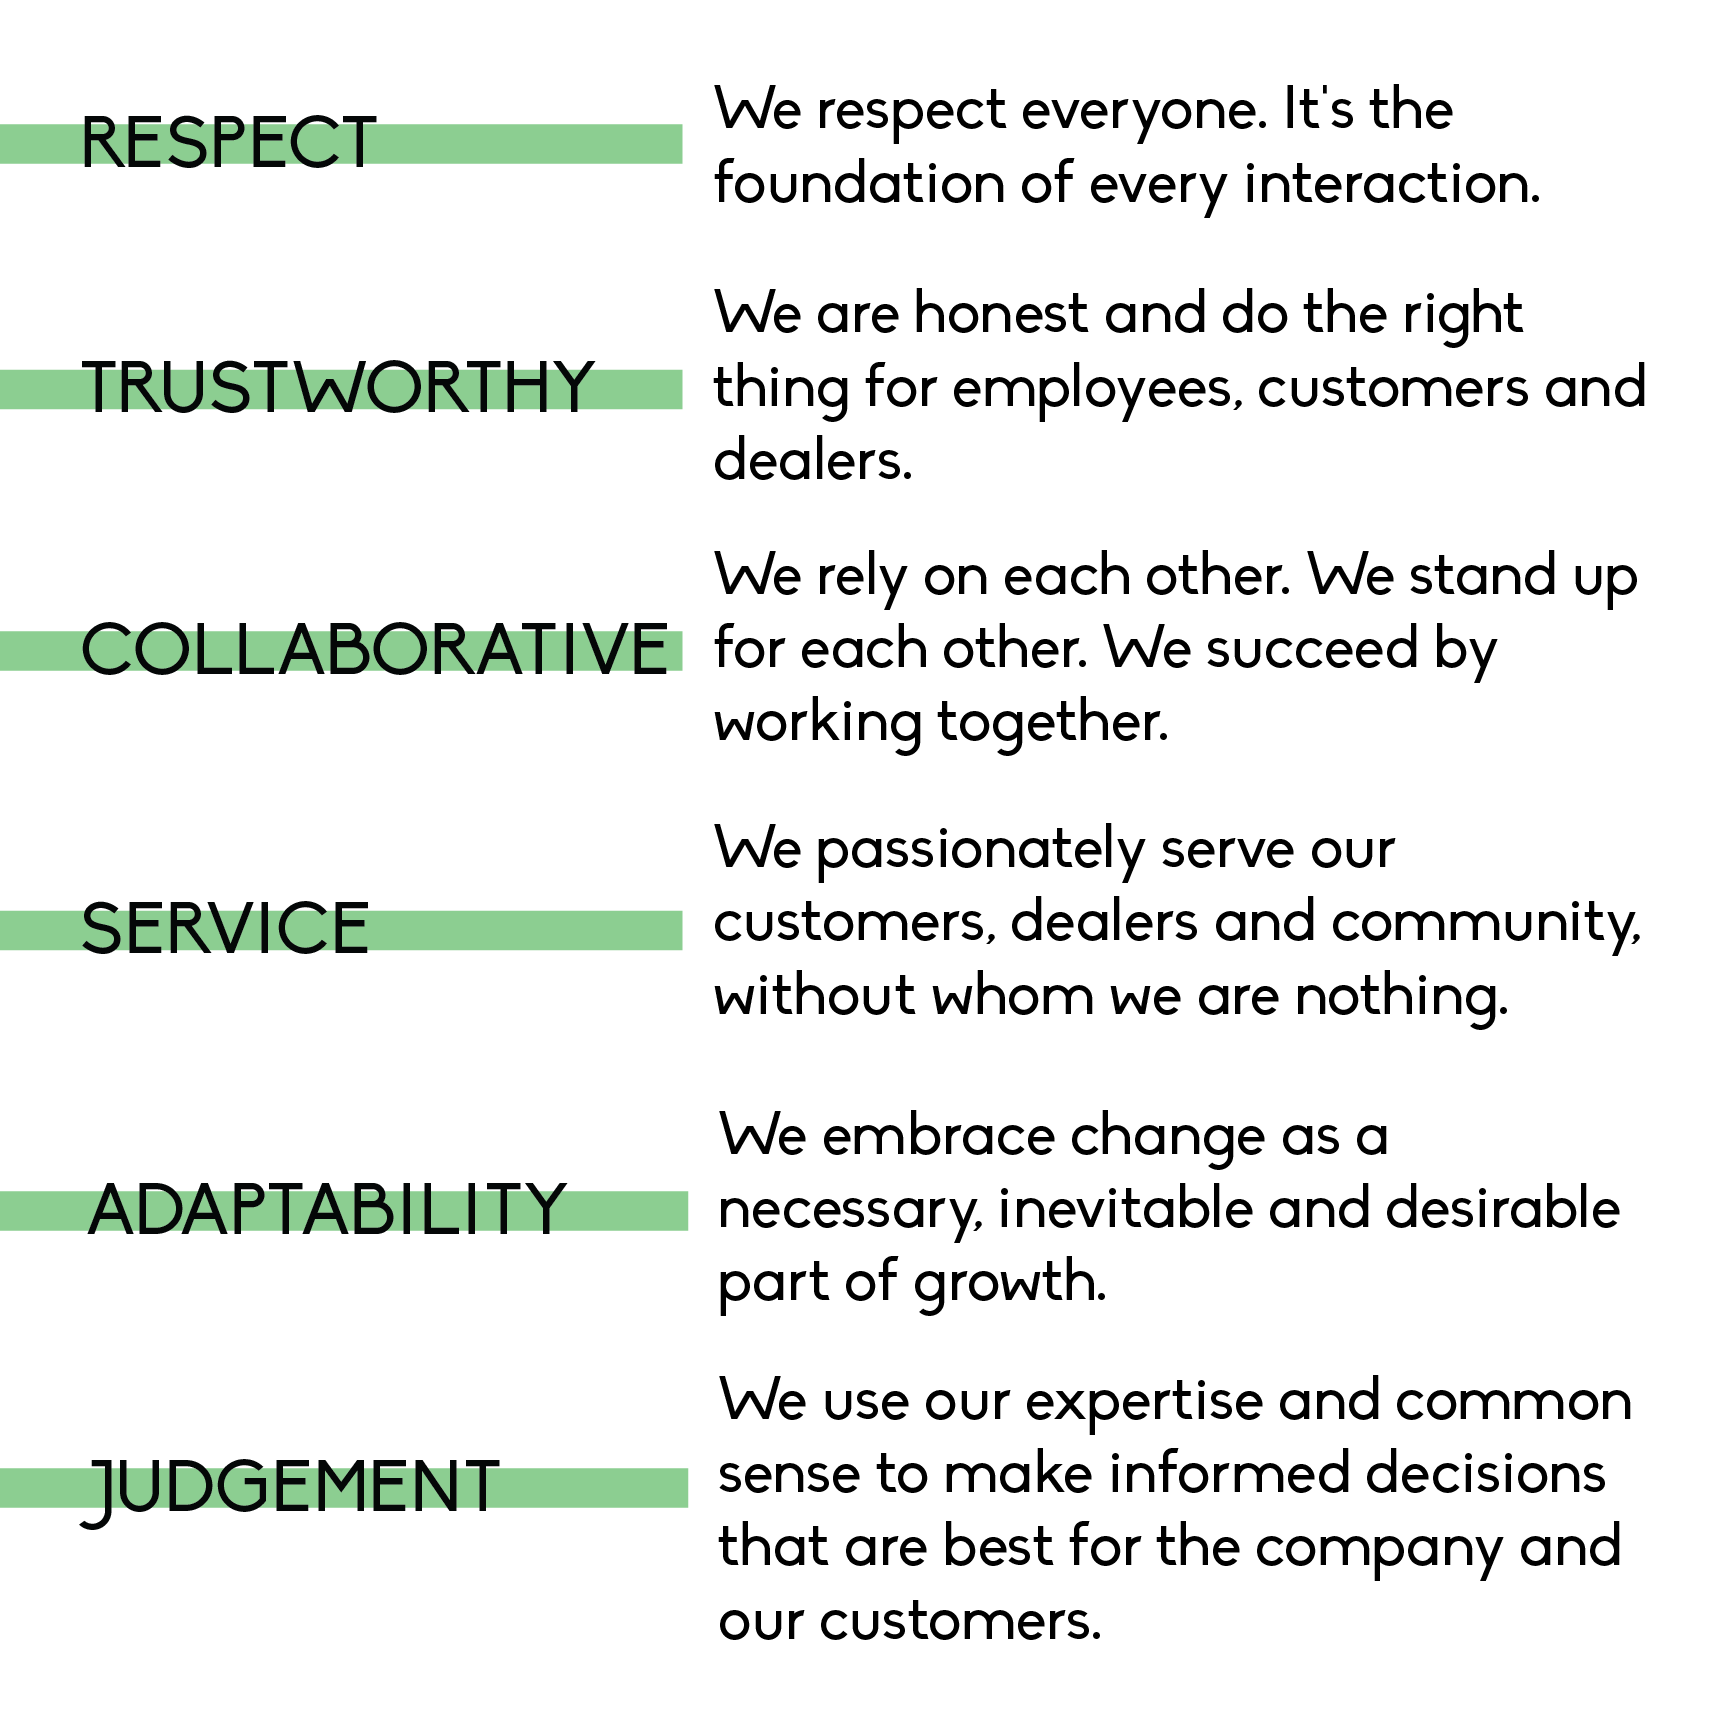 Values Web